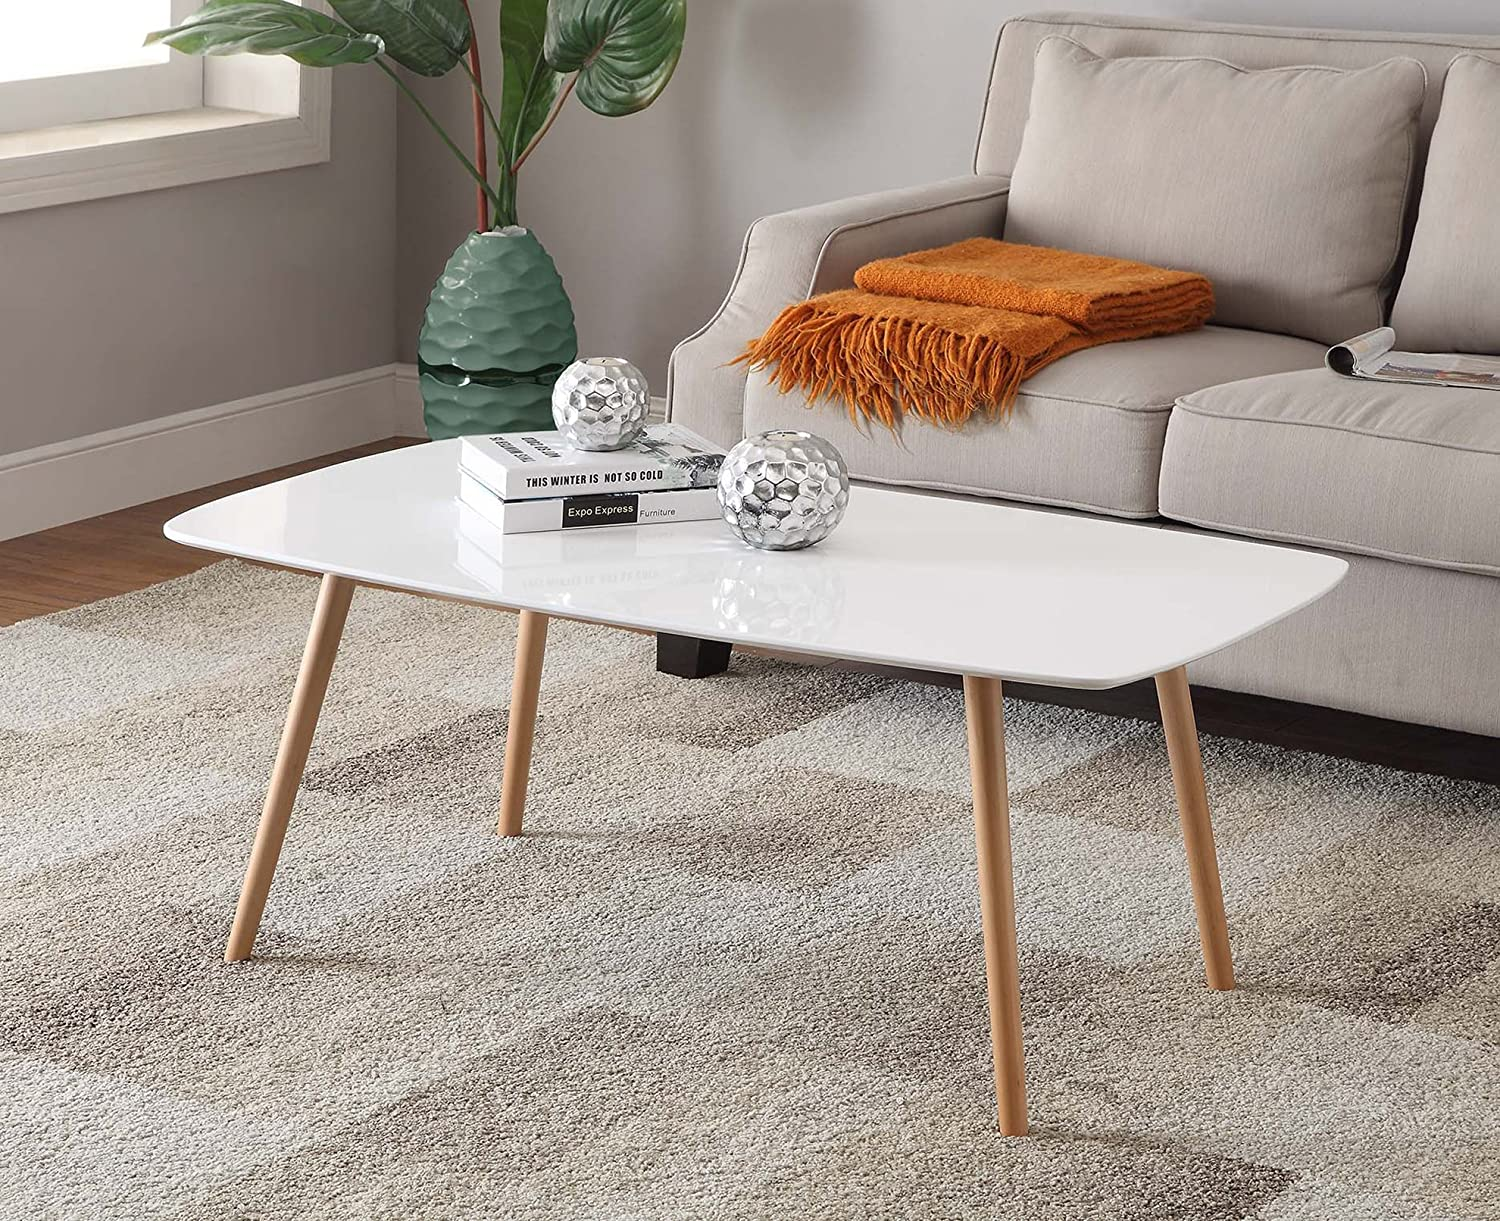 Amazon.com: Convenience Concepts Oslo Coffee Table, White: Kitchen & Dining - Amazon.com: Convenience Concepts Oslo Coffee Table, White: Kitchen